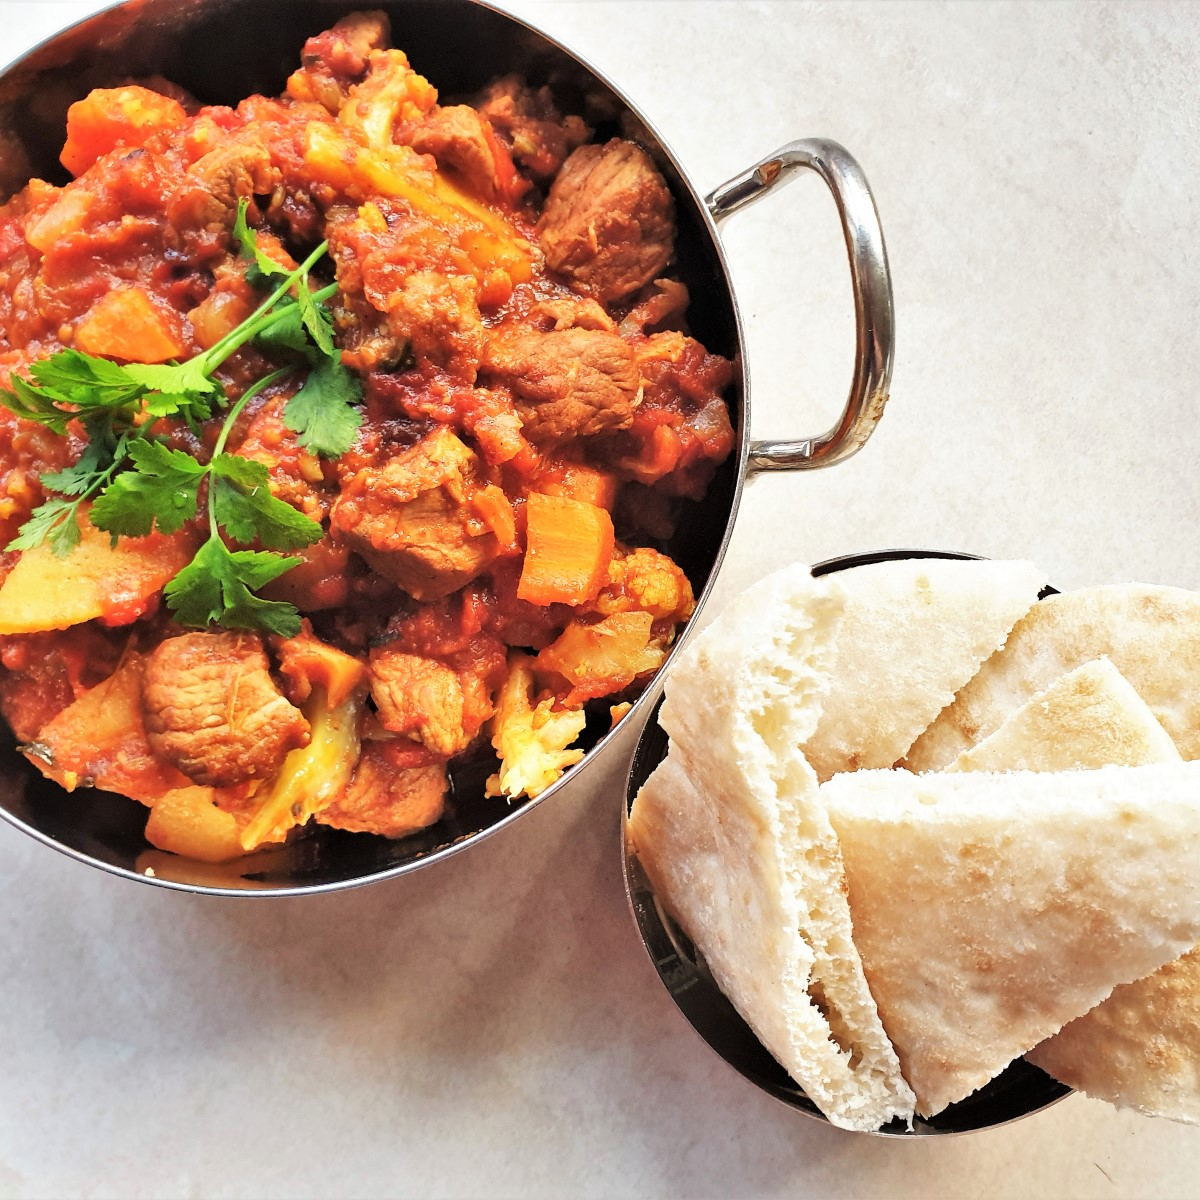 A balti dish of lamb curry alongside a slices of naan bread